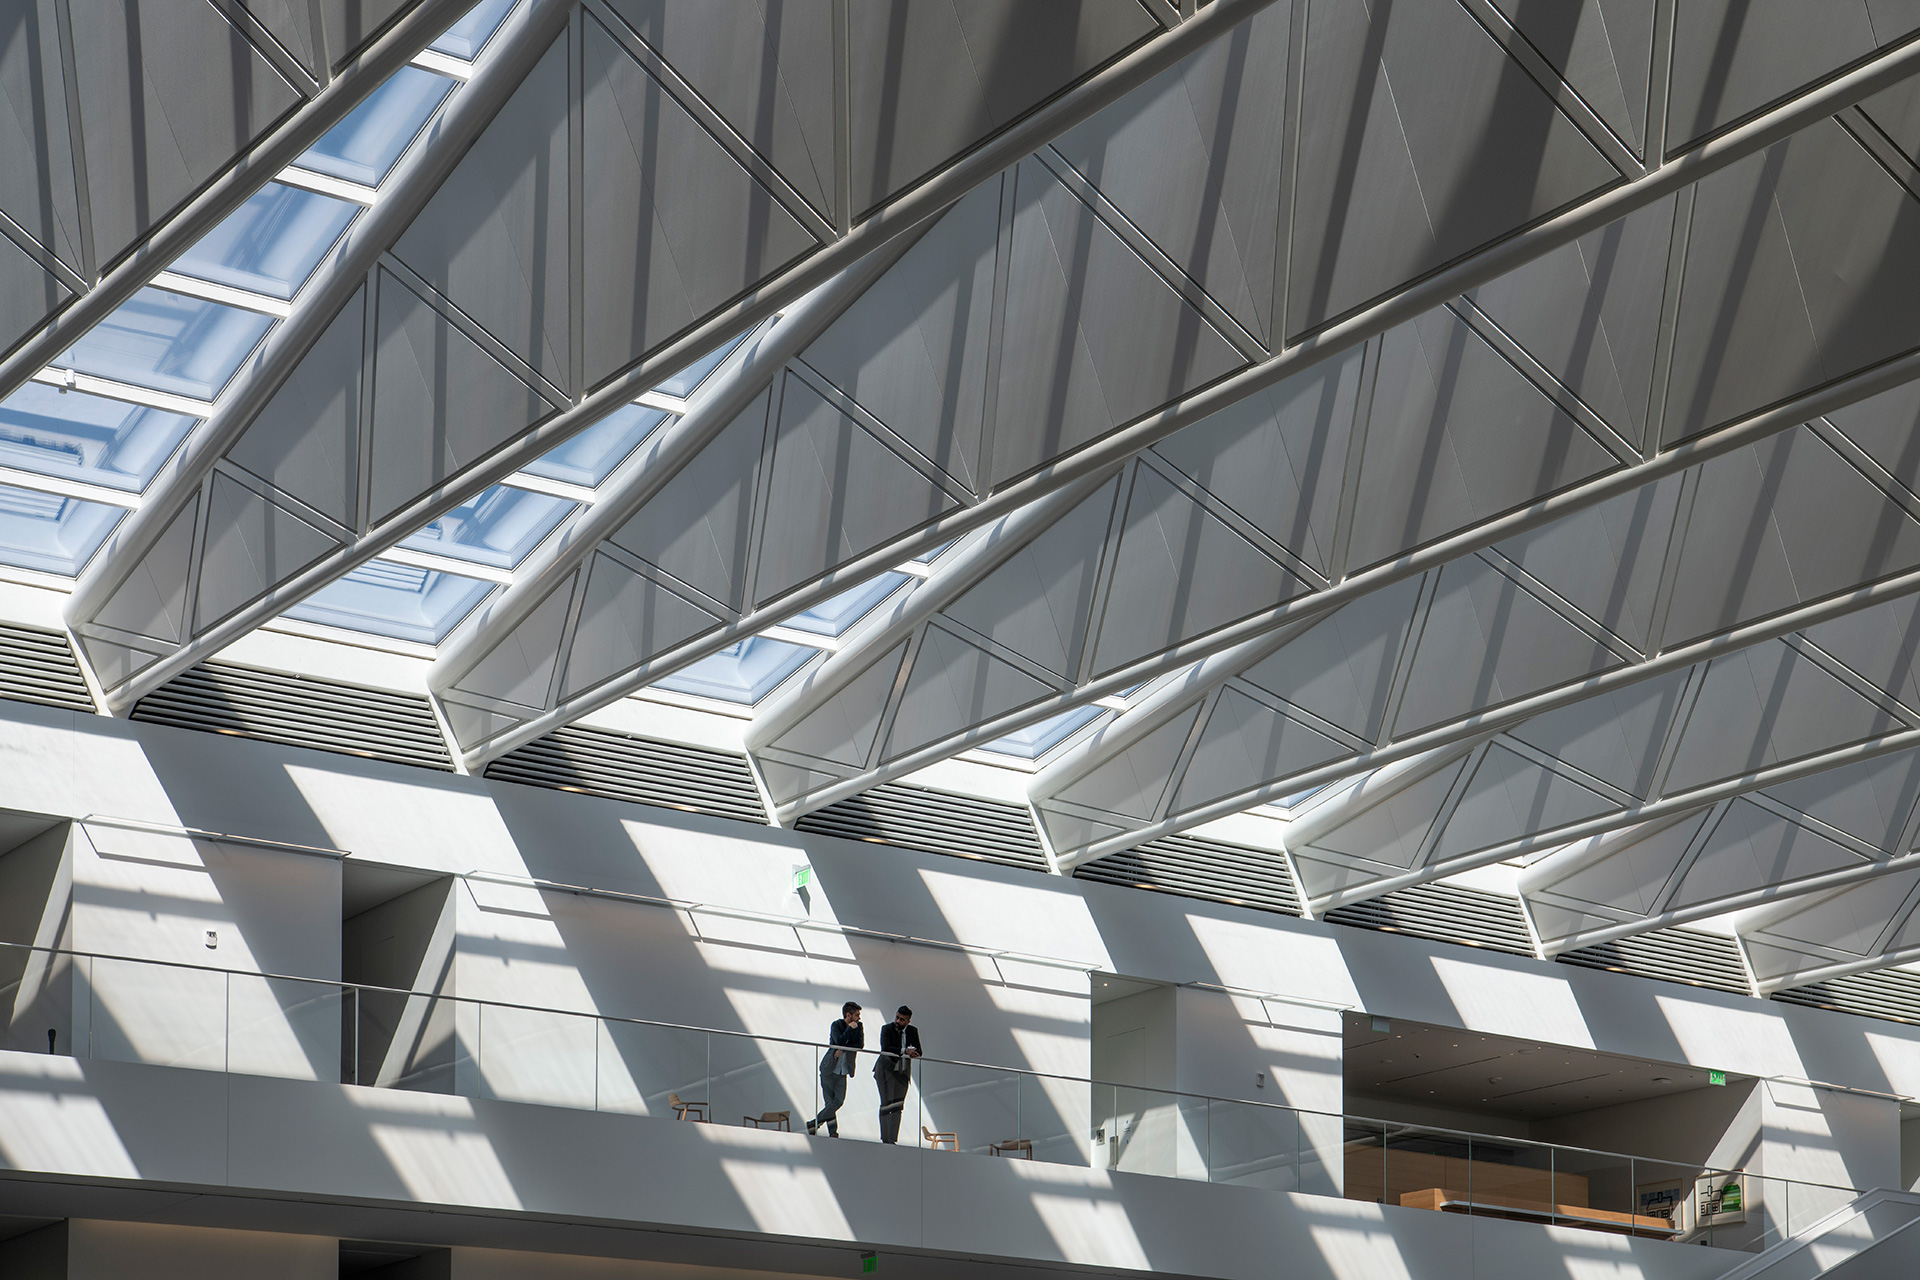 During the daytime, the glass and steel truss roof filter abundant natural light inside the atrium | Cleveland Clinic | Foster + Partners | STIR